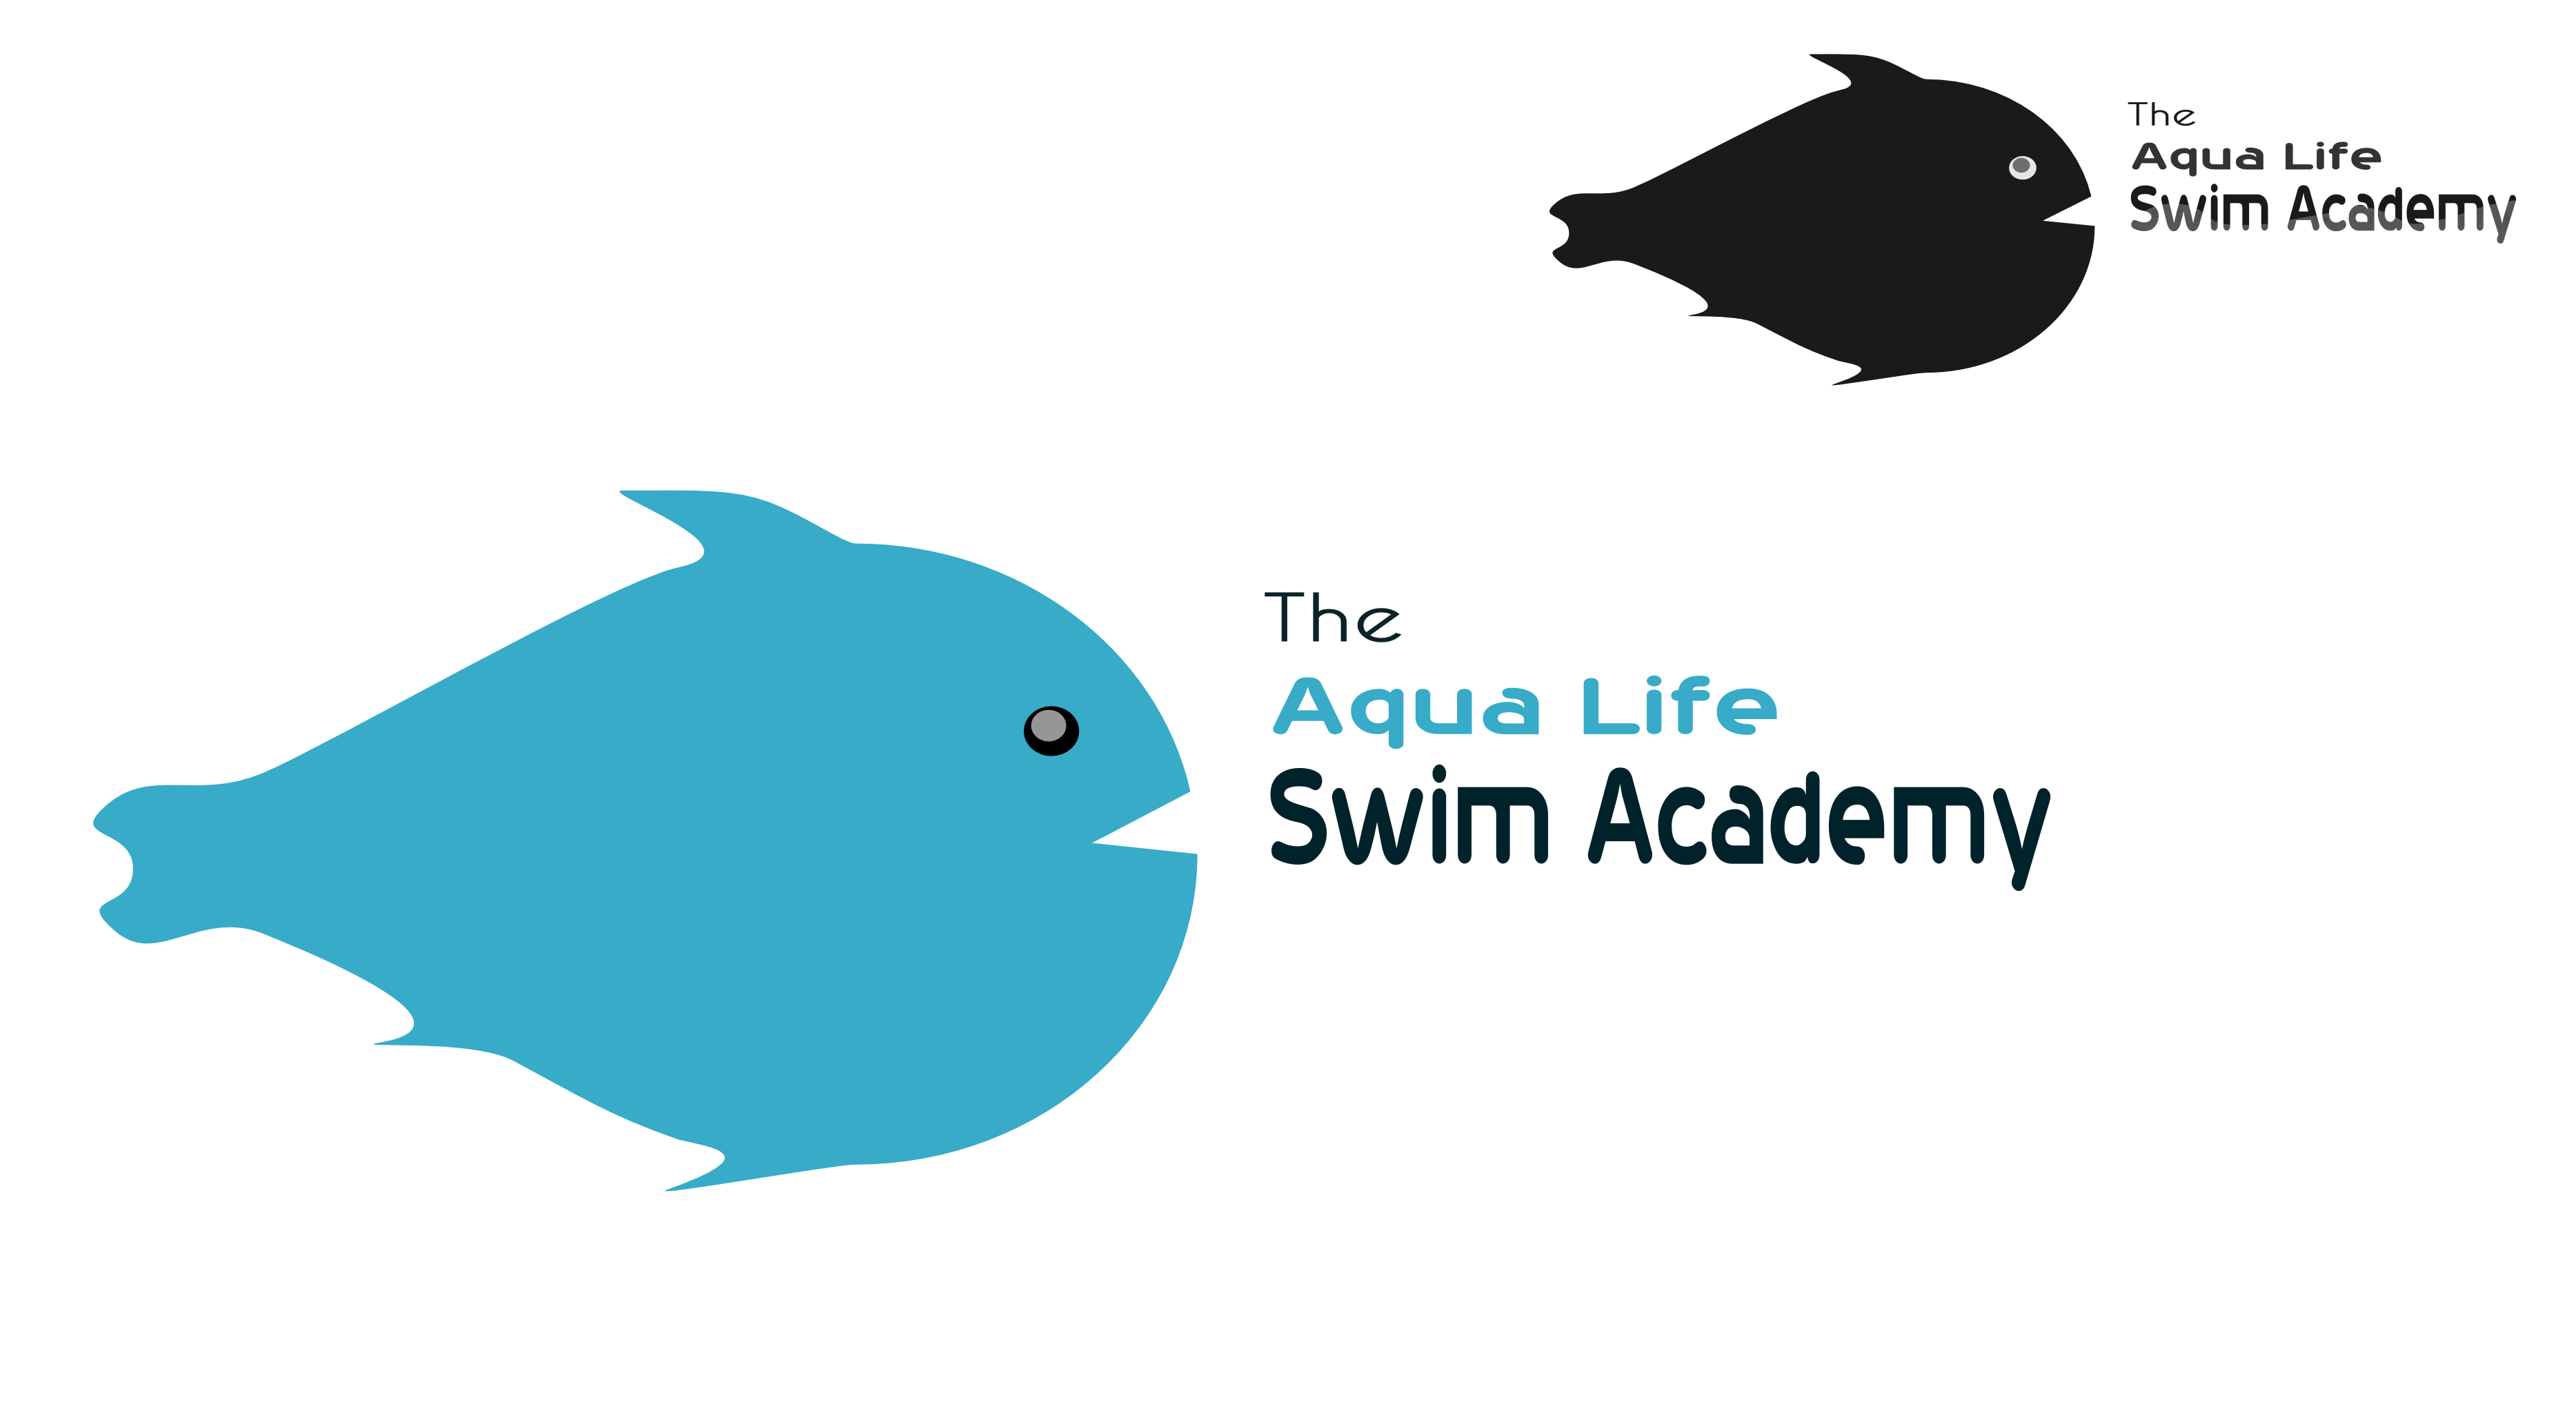 Logo Design by Arindam Khanda - Entry No. 74 in the Logo Design Contest Artistic Logo Design Wanted for The Aqua Life Swim Academy.